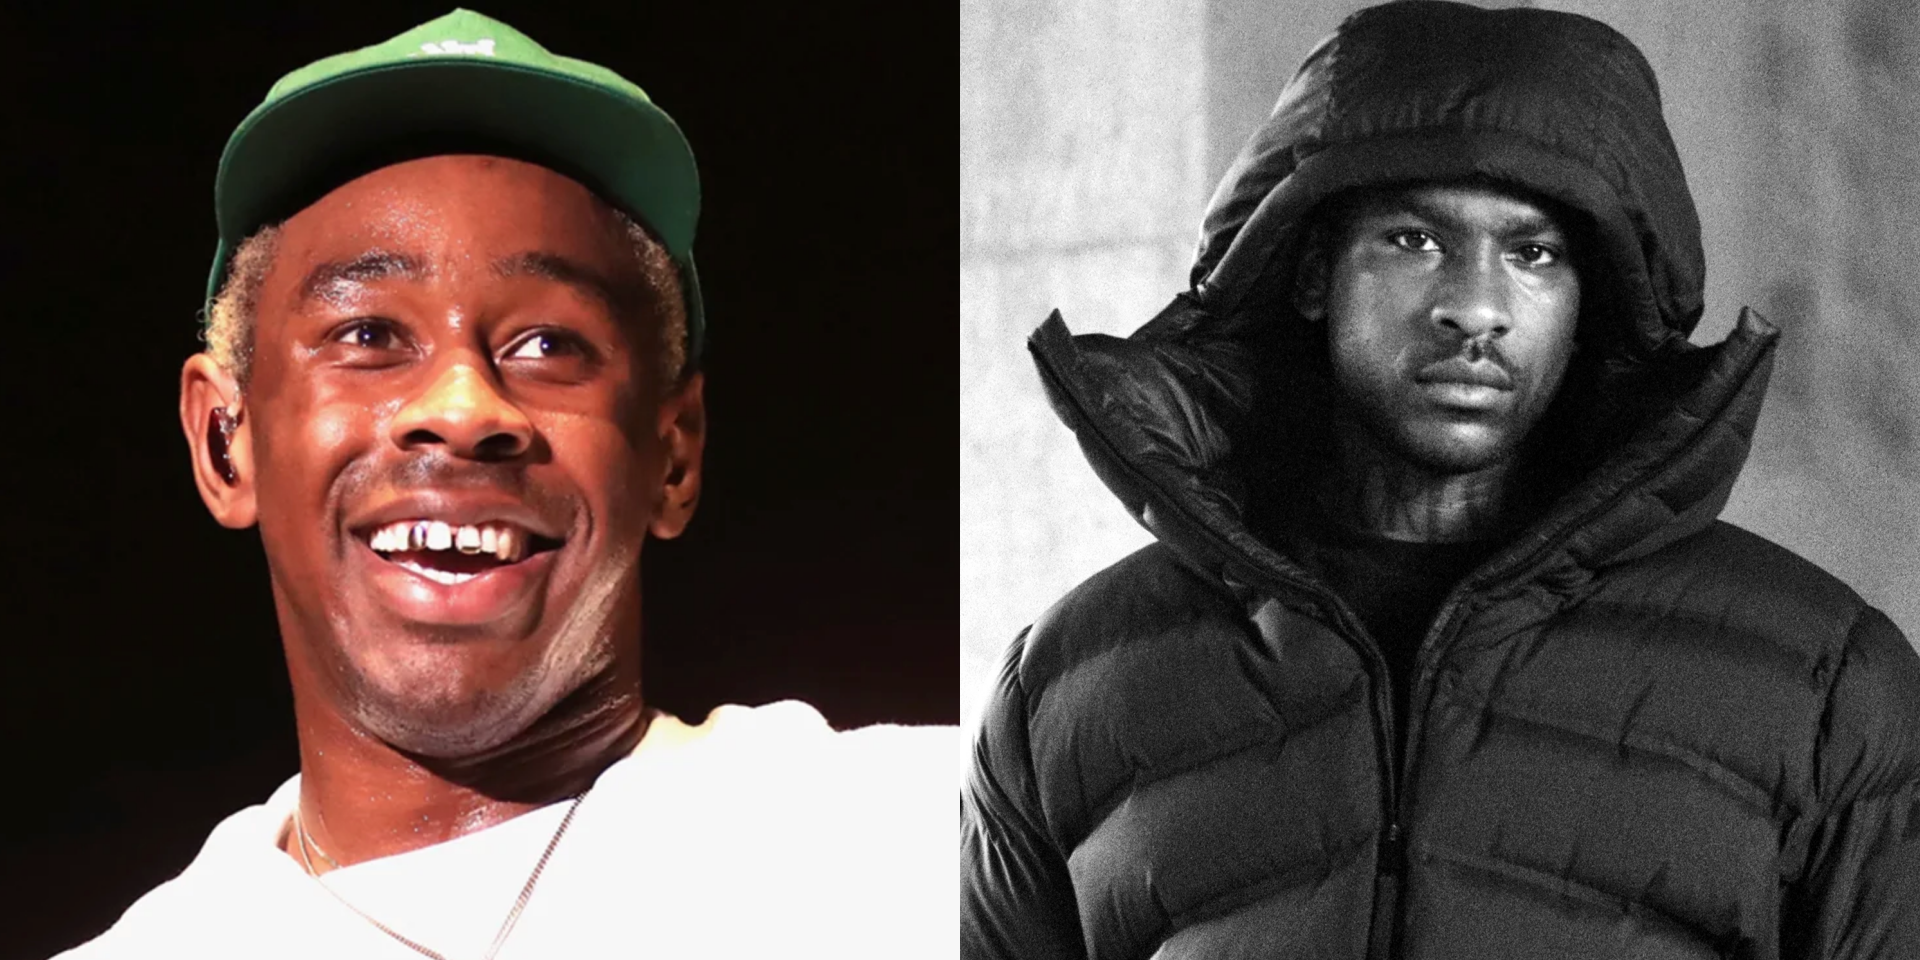 Tyler, the Creator and Skepta will perform at the Beyond the Valley festival in Australia in December